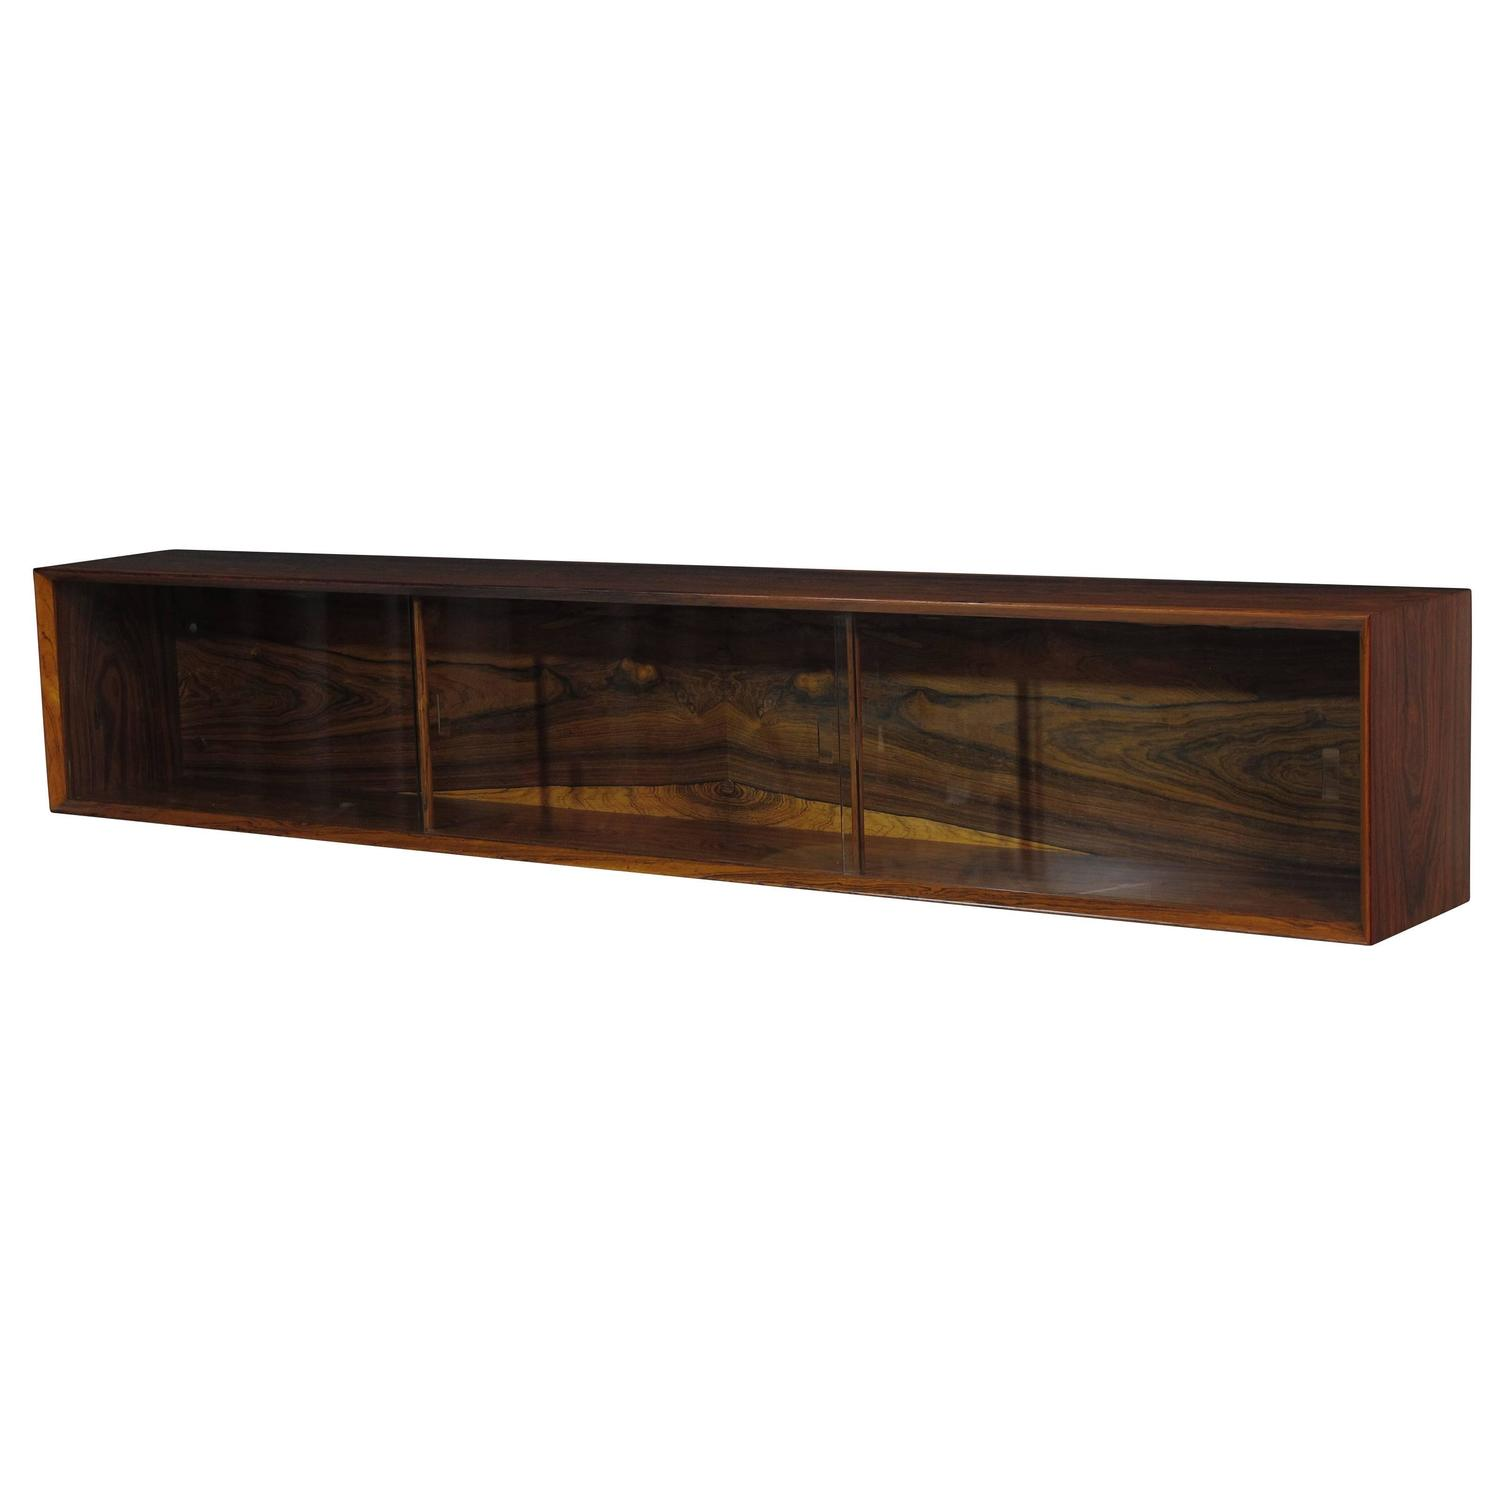 Wall Mount Floating Danish Rosewood Credenza For Sale At